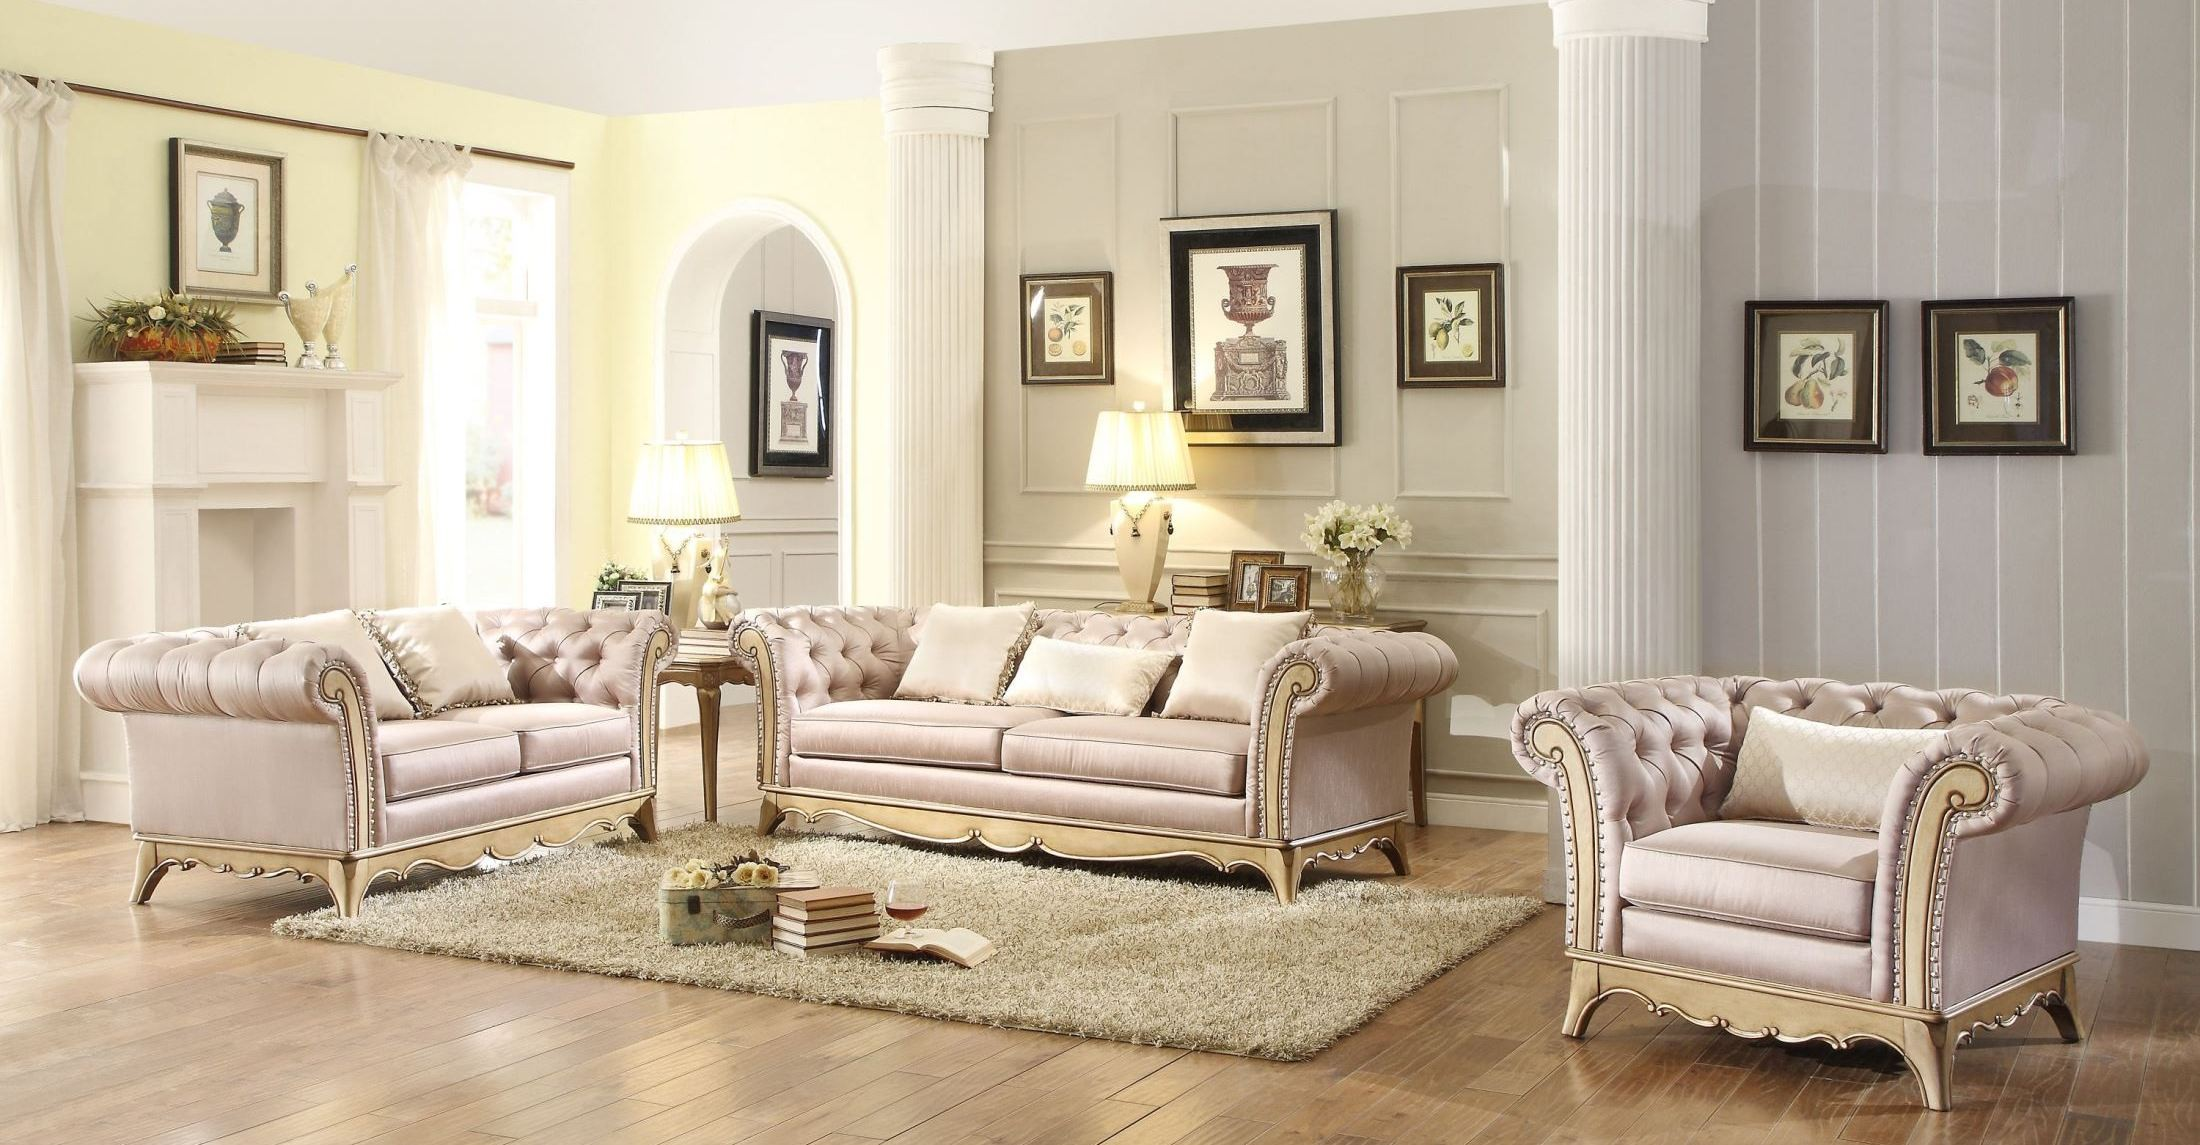 Chambord champagne gold living room set from homelegance for Gold sofa living room